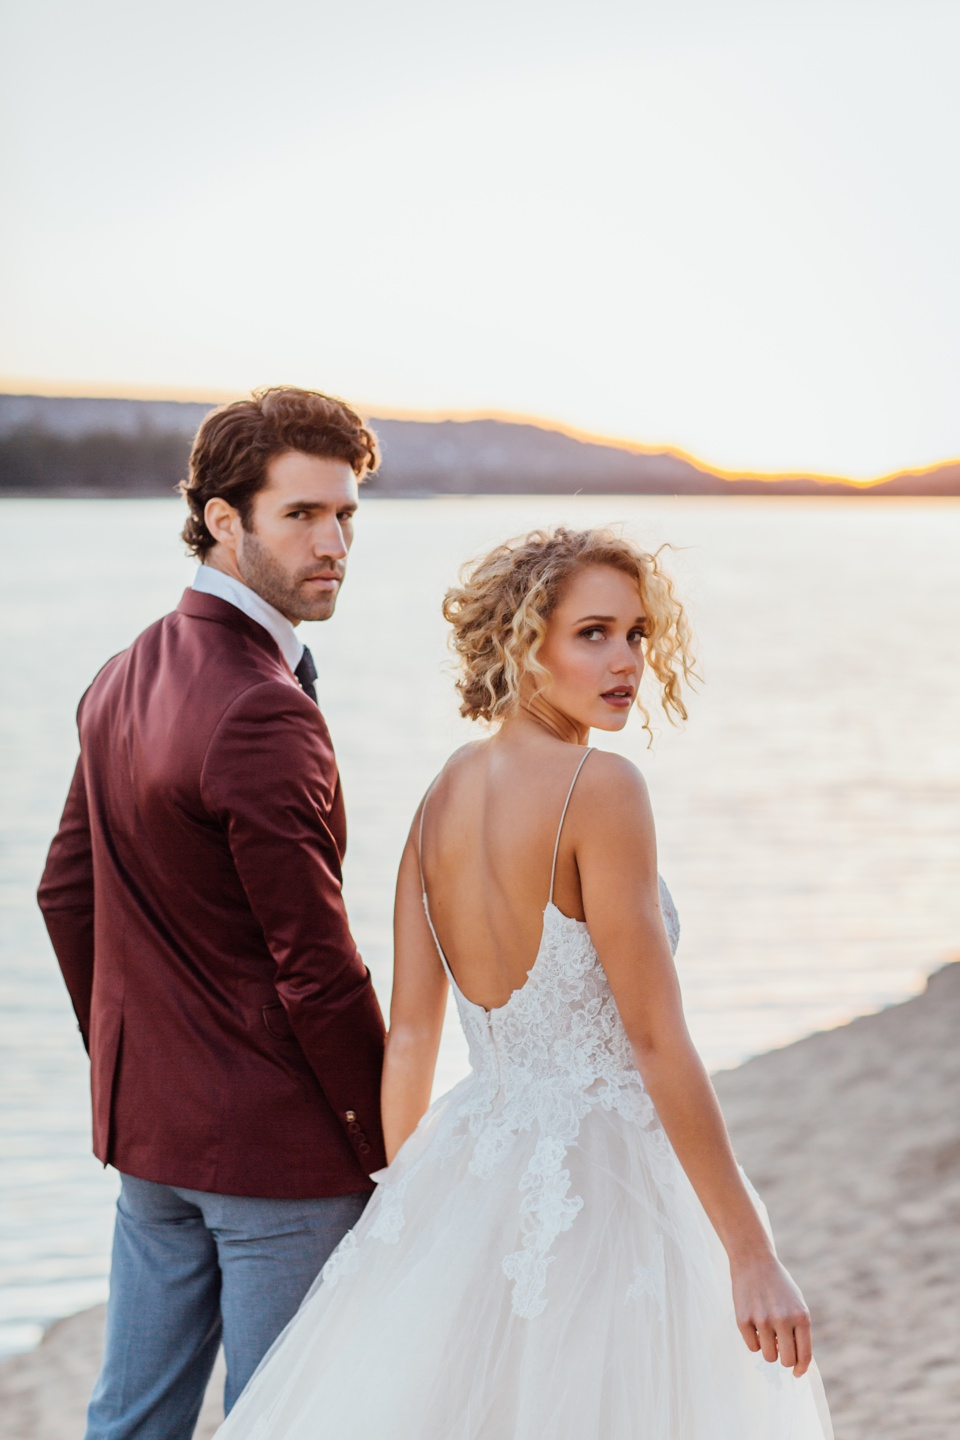 allie silva, amber silva makeup artist, andres sette ruzza, big bear, big bear elopement, big bear wedding, cargo creative, elopement, elopement series, flower crown, forest elopement, forest wedding, forest wedding ideas, kendal riley, KENDAL RILEY PHOTOGRAPHY, lake arrowhead, lake arrowhead wedding, lodge ceremony, lodge wedding, mountain elopement, mountain lodge wedding, mountain wedding, noon lodge big bear, noon lodge ceremony, noon lodge wedding, OSTARA PHOTOGRAPHY, springtime elopement, springtime wedding, styled forest wedding, styled mountain wedding, styling by stephanie Gutierrez, whimsical mountain wedding, whimsical wedding, woodsy elopement, woodsy wedding